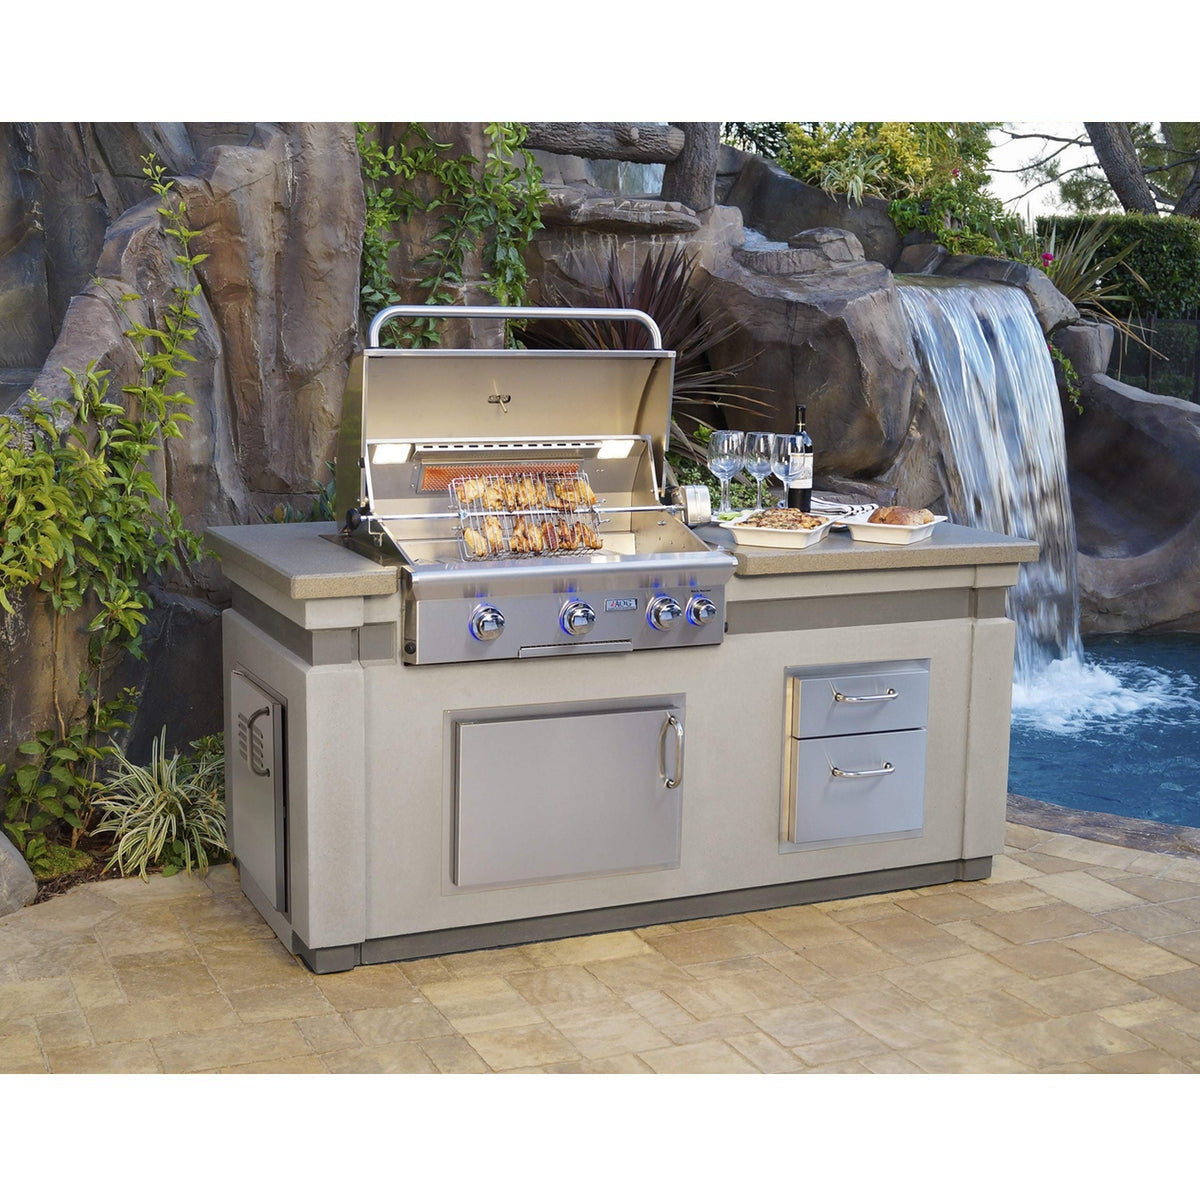 American Outdoor Grill (AOG) BBQ Island L-Series Bundle ...